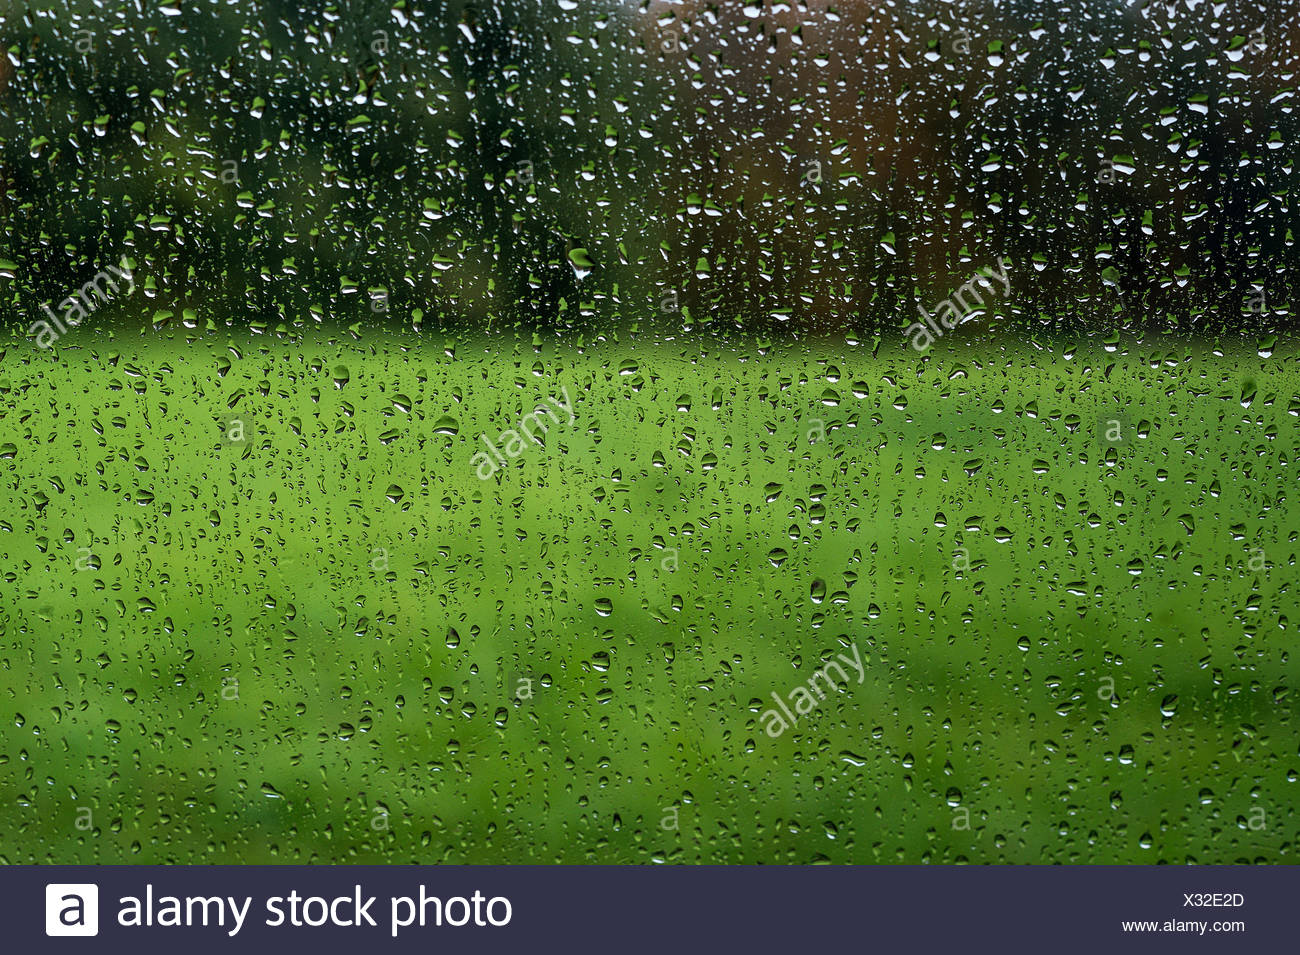 Rain streaked window looking out. - Stock Image